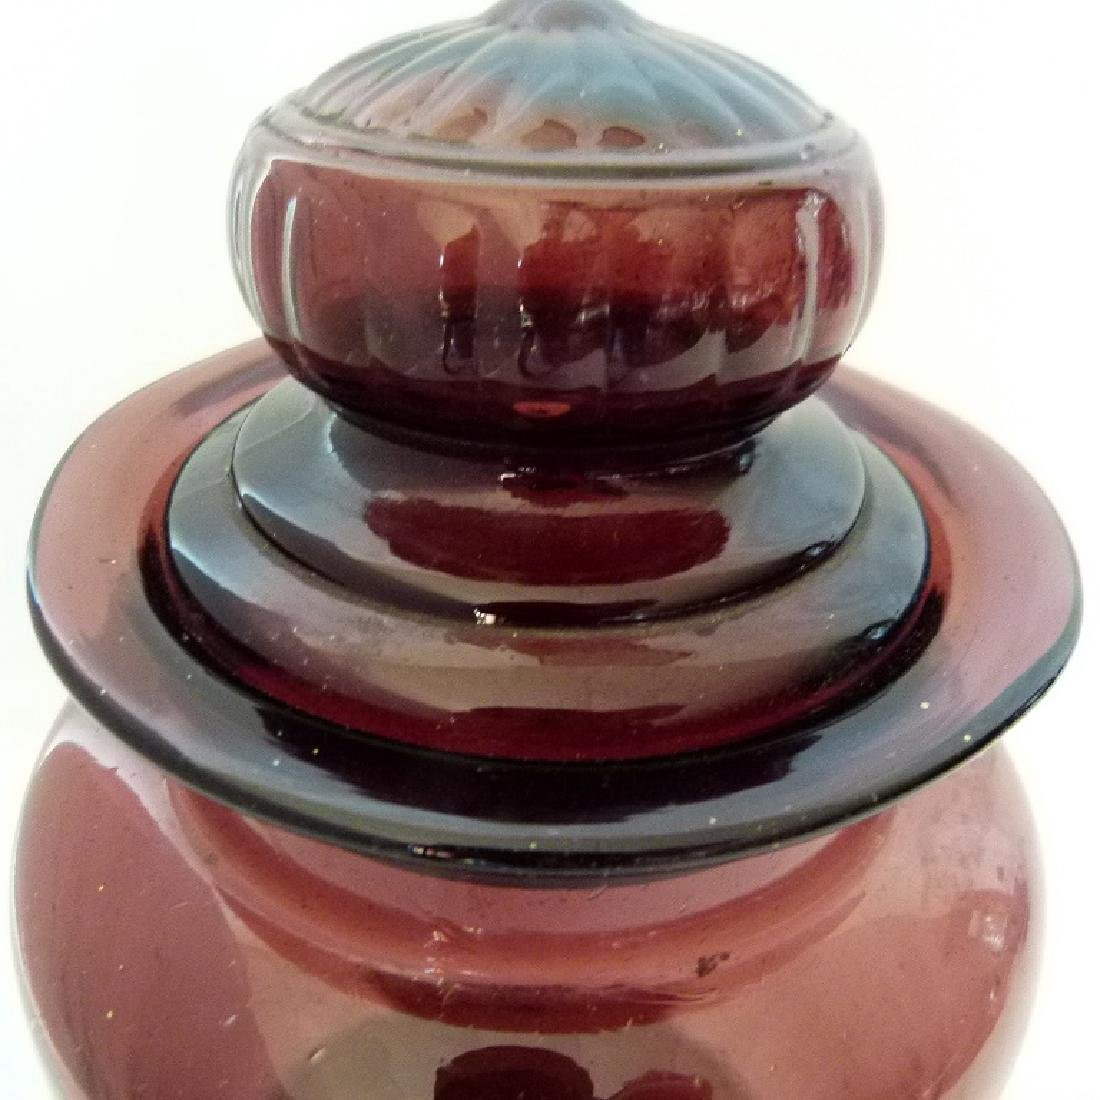 LARGE AMETHYST GLASS COVERED APOTHECARY JAR, 19TH C. - 2